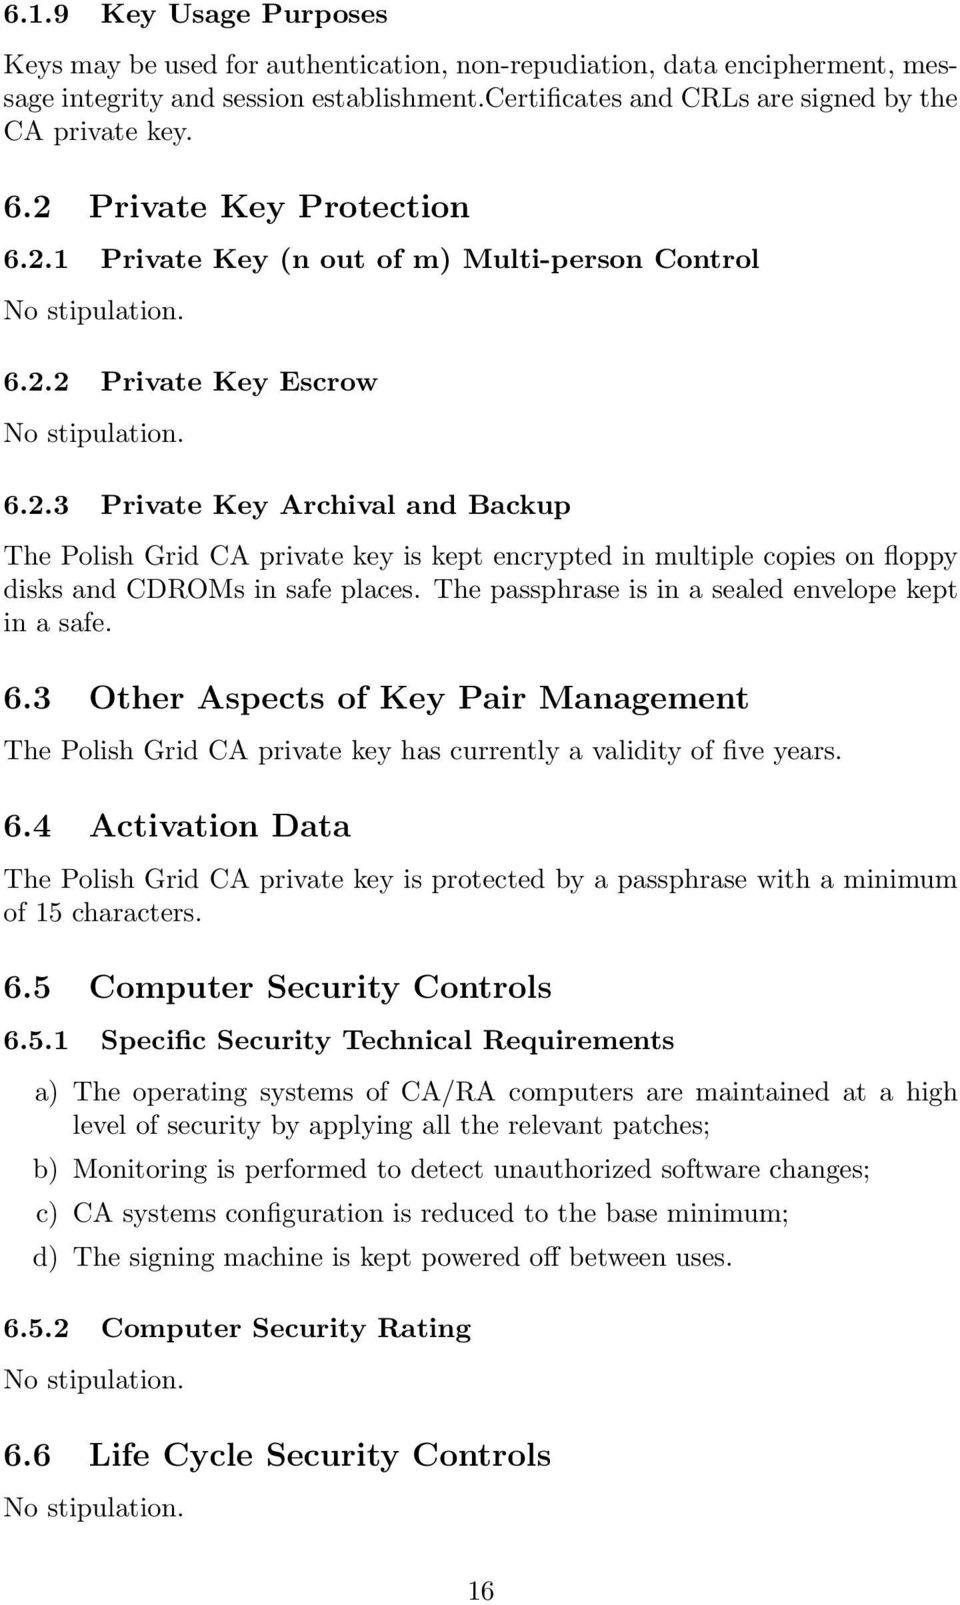 The passphrase is in a sealed envelope kept in a safe. 6.3 Other Aspects of Key Pair Management The Polish Grid CA private key has currently a validity of five years. 6.4 Activation Data The Polish Grid CA private key is protected by a passphrase with a minimum of 15 characters.